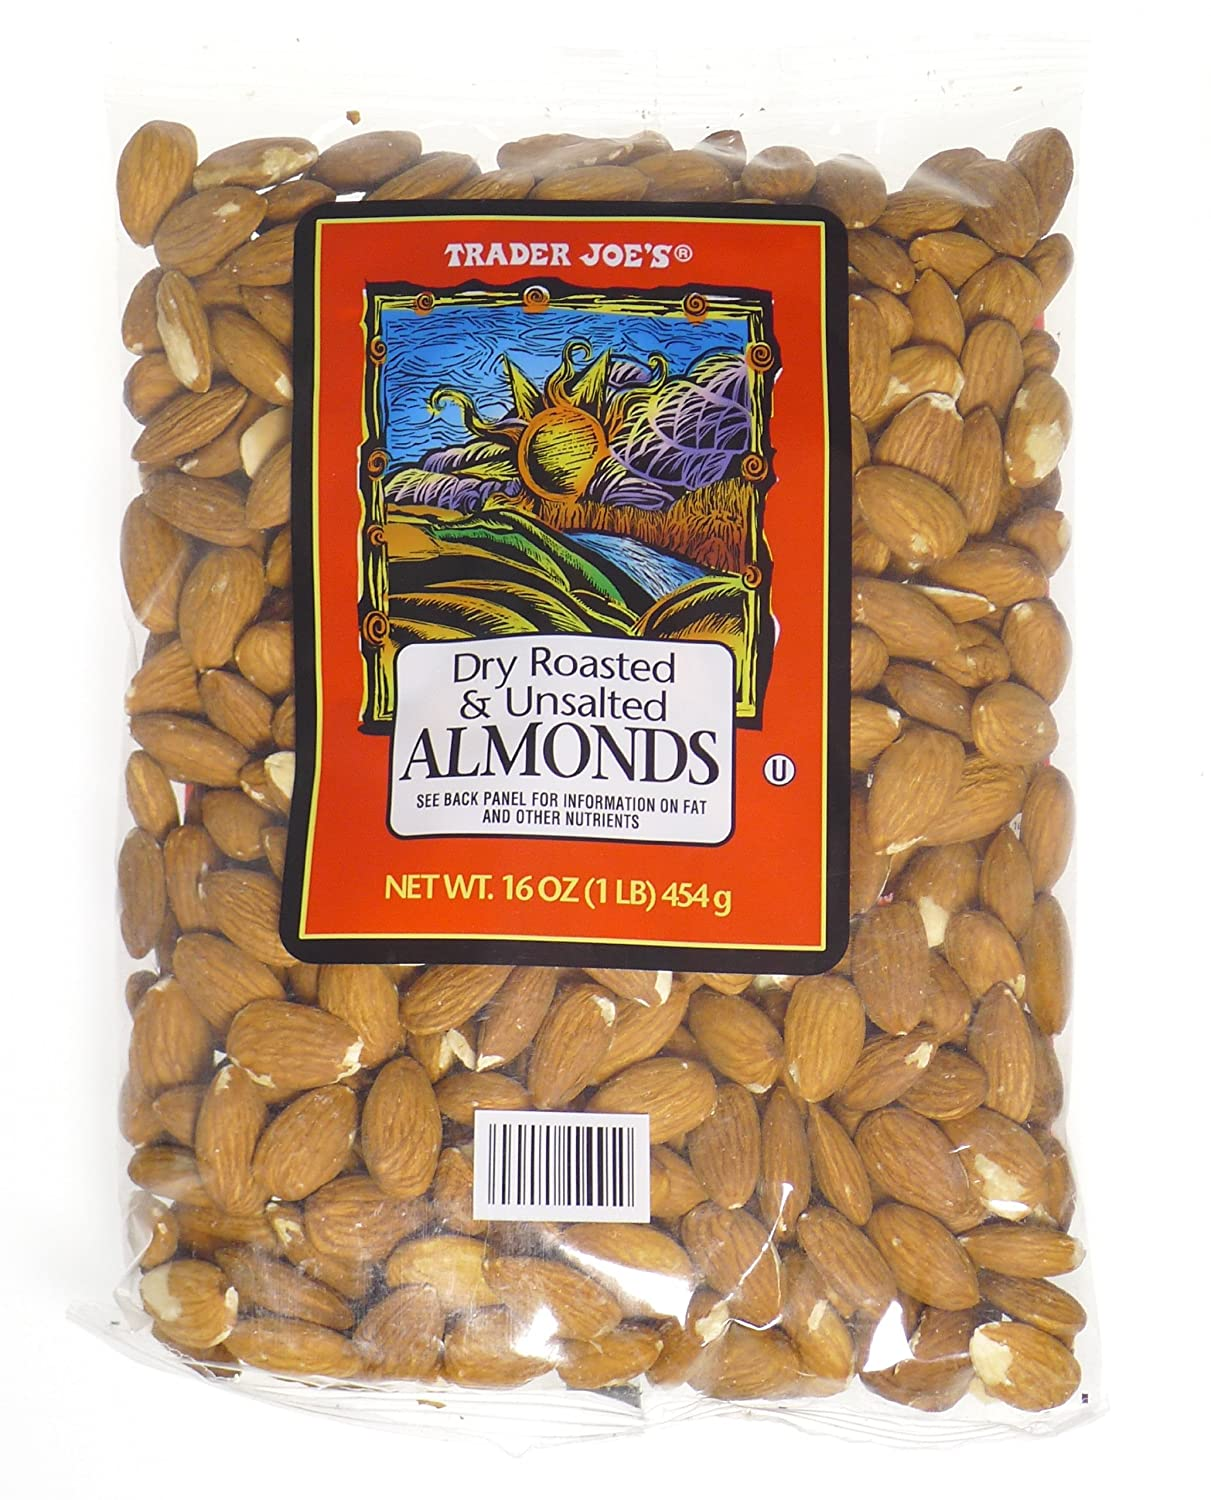 Trader Joe's Dry Roasted and Unsalted - Super beauty product restock 2021 spring and summer new quality top 1lb Almonds 4 Pack